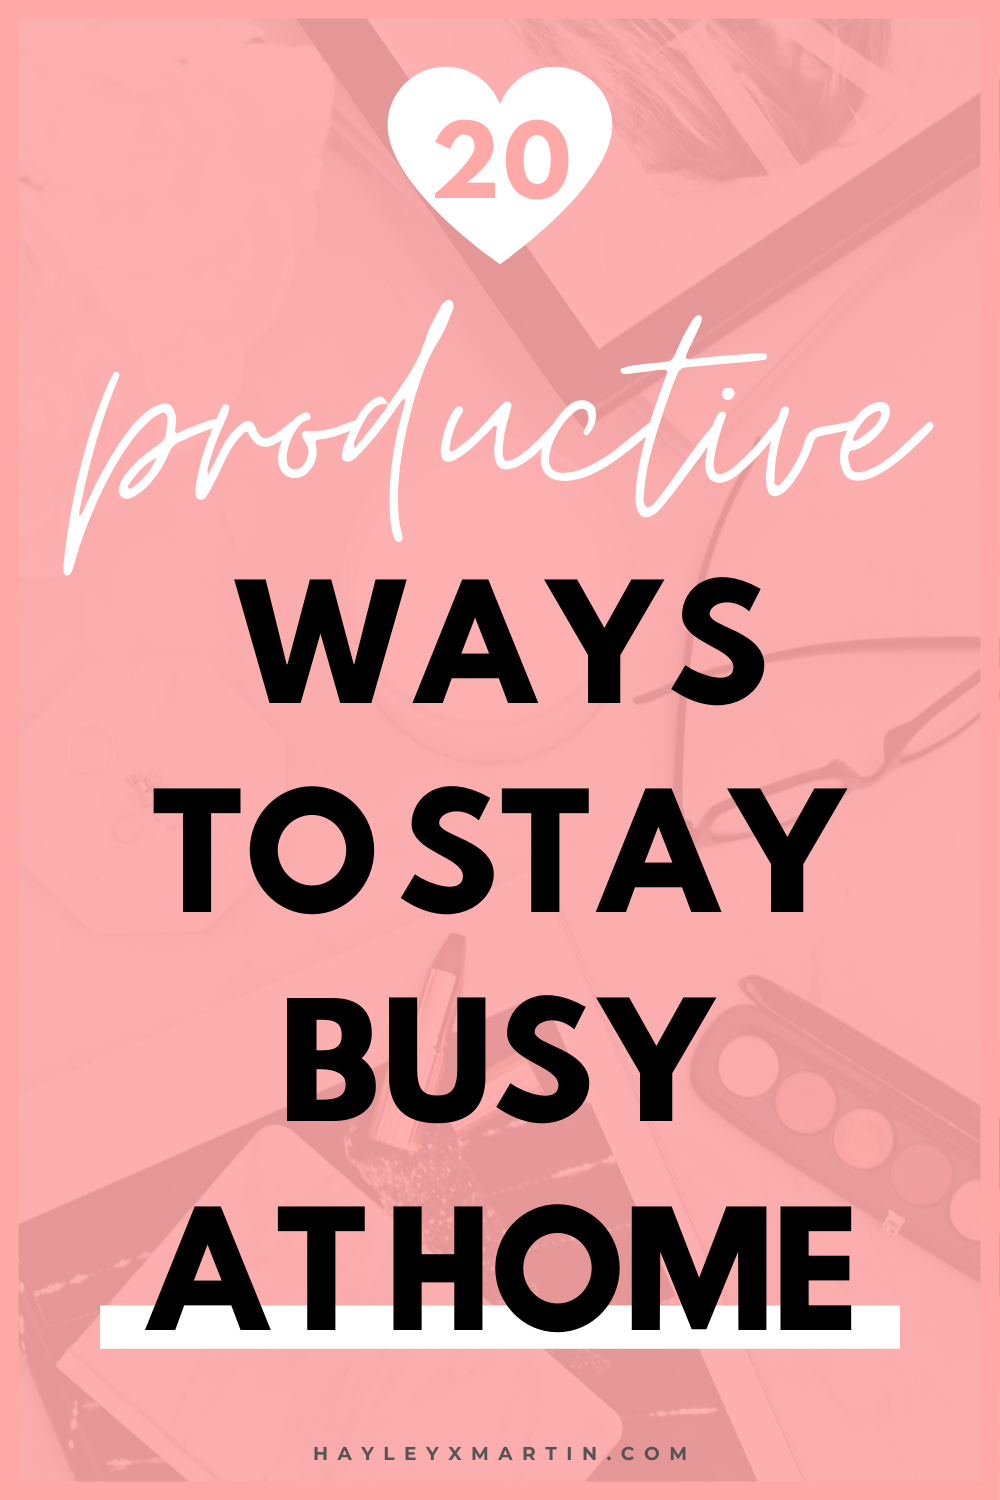 20 productive ways to stay busy at home | hayleyxmartin